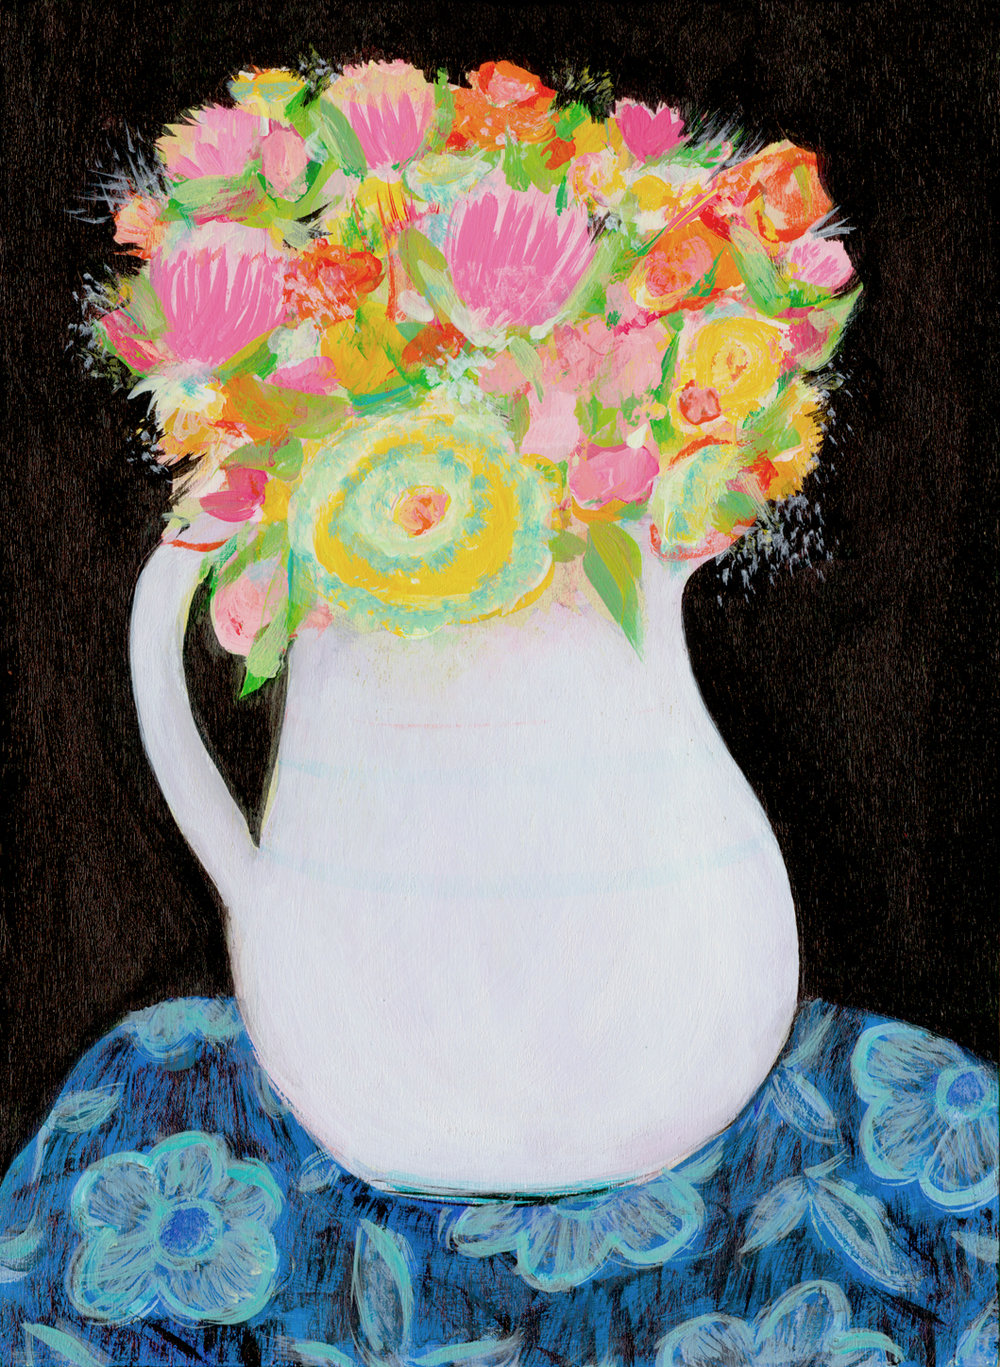 Allyn_Howard_wht_flower-vase.jpg